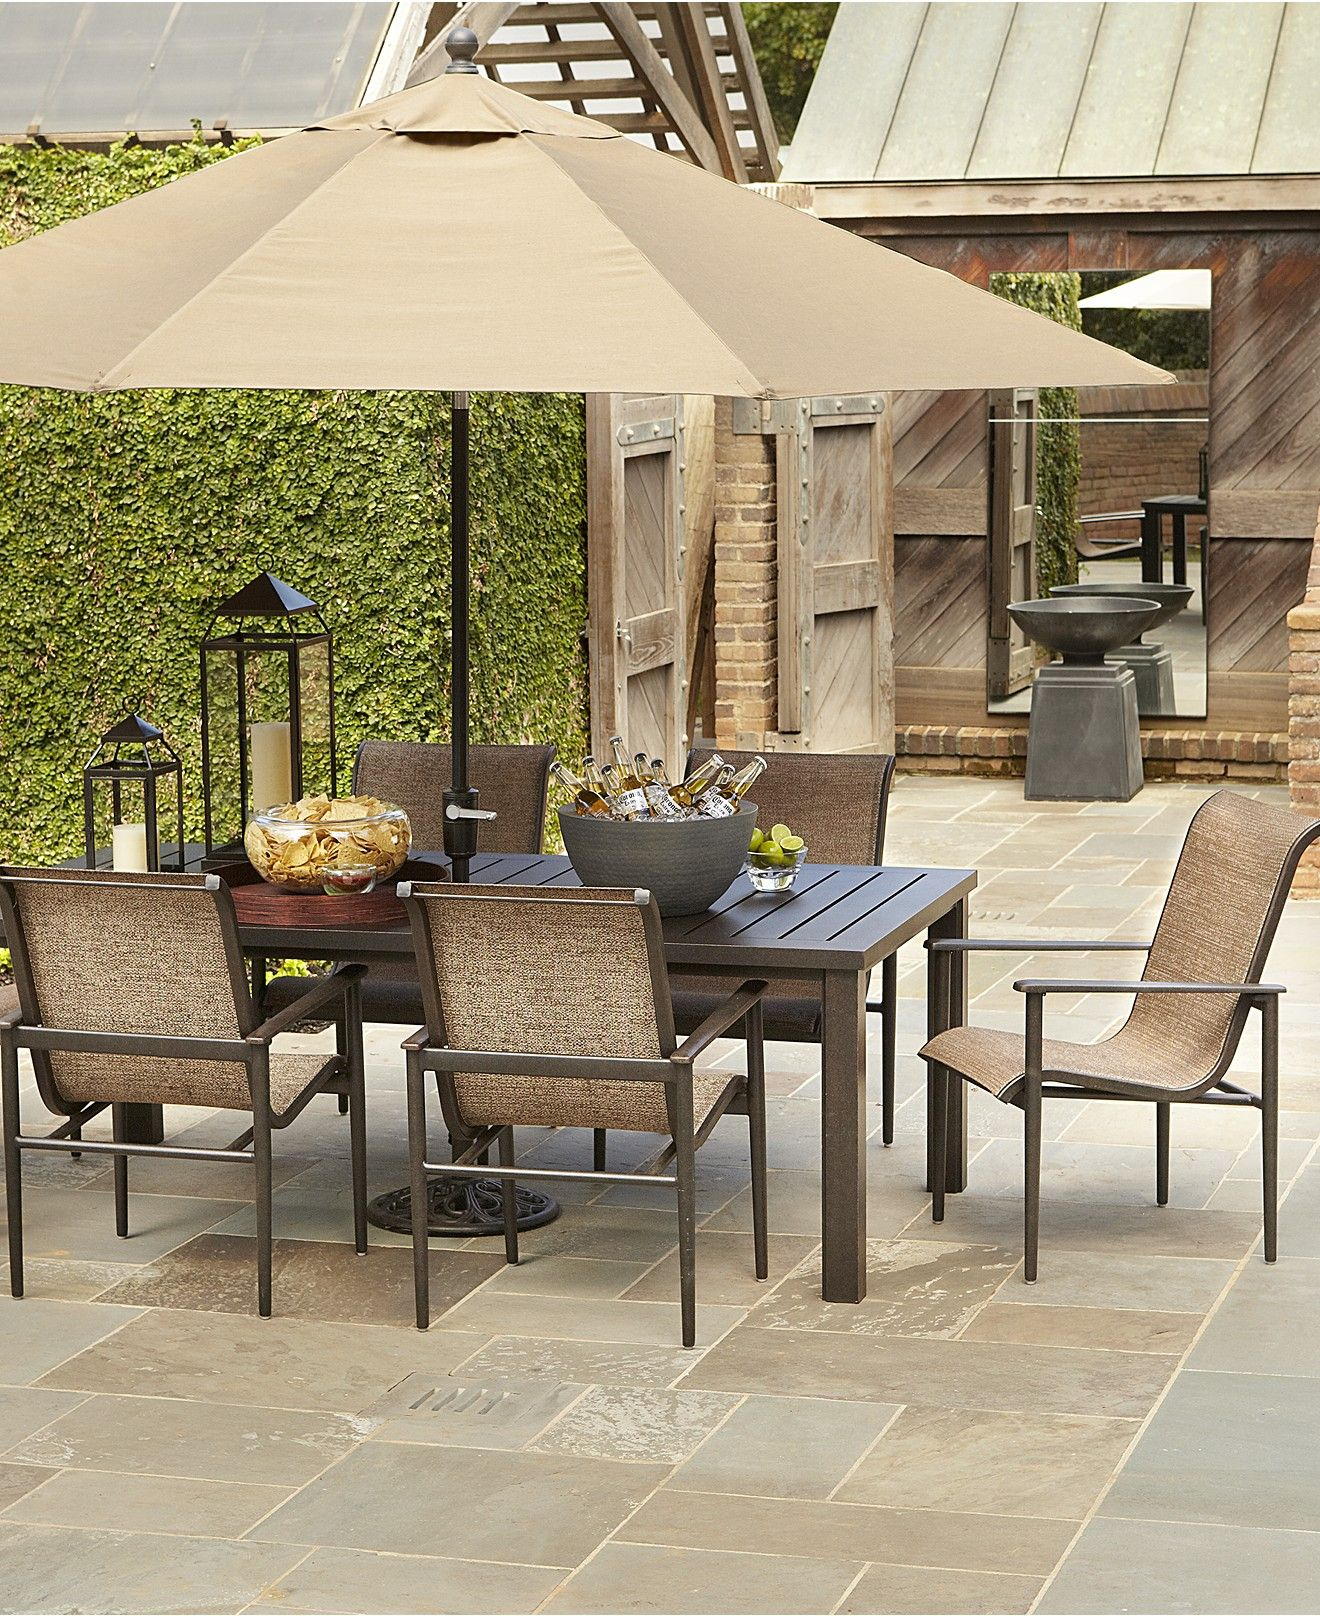 Badgley Outdoor Patio Furniture Dining Sets & Pieces ... on Living Spaces Outdoor Dining id=82403